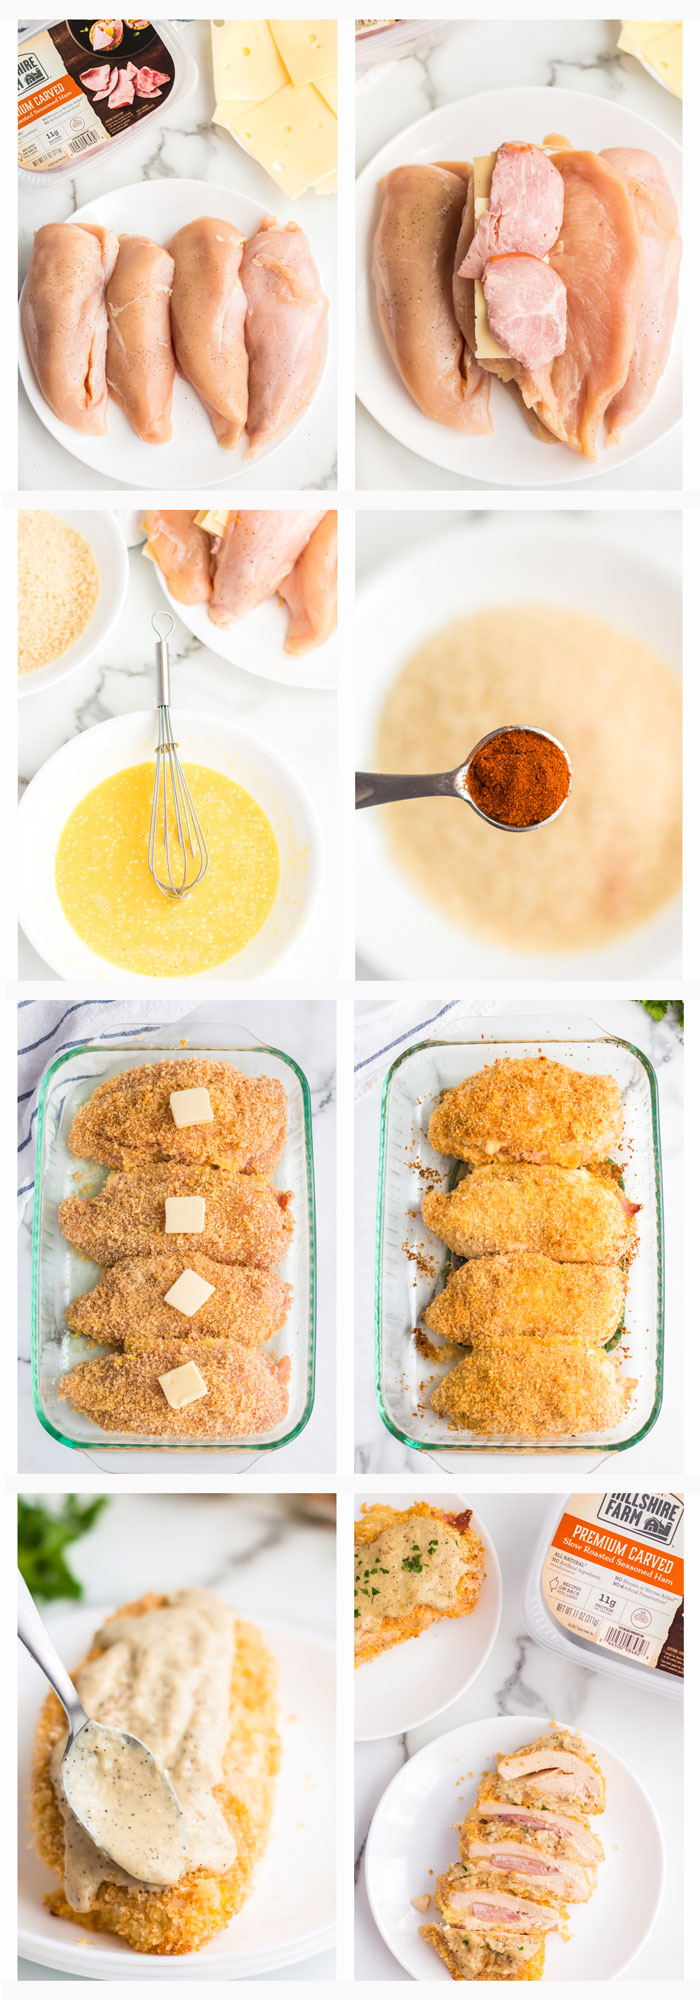 A series of process shots for how to make chicken cordon bleu, from creating the egg mixture and dredge to baking with butter on top